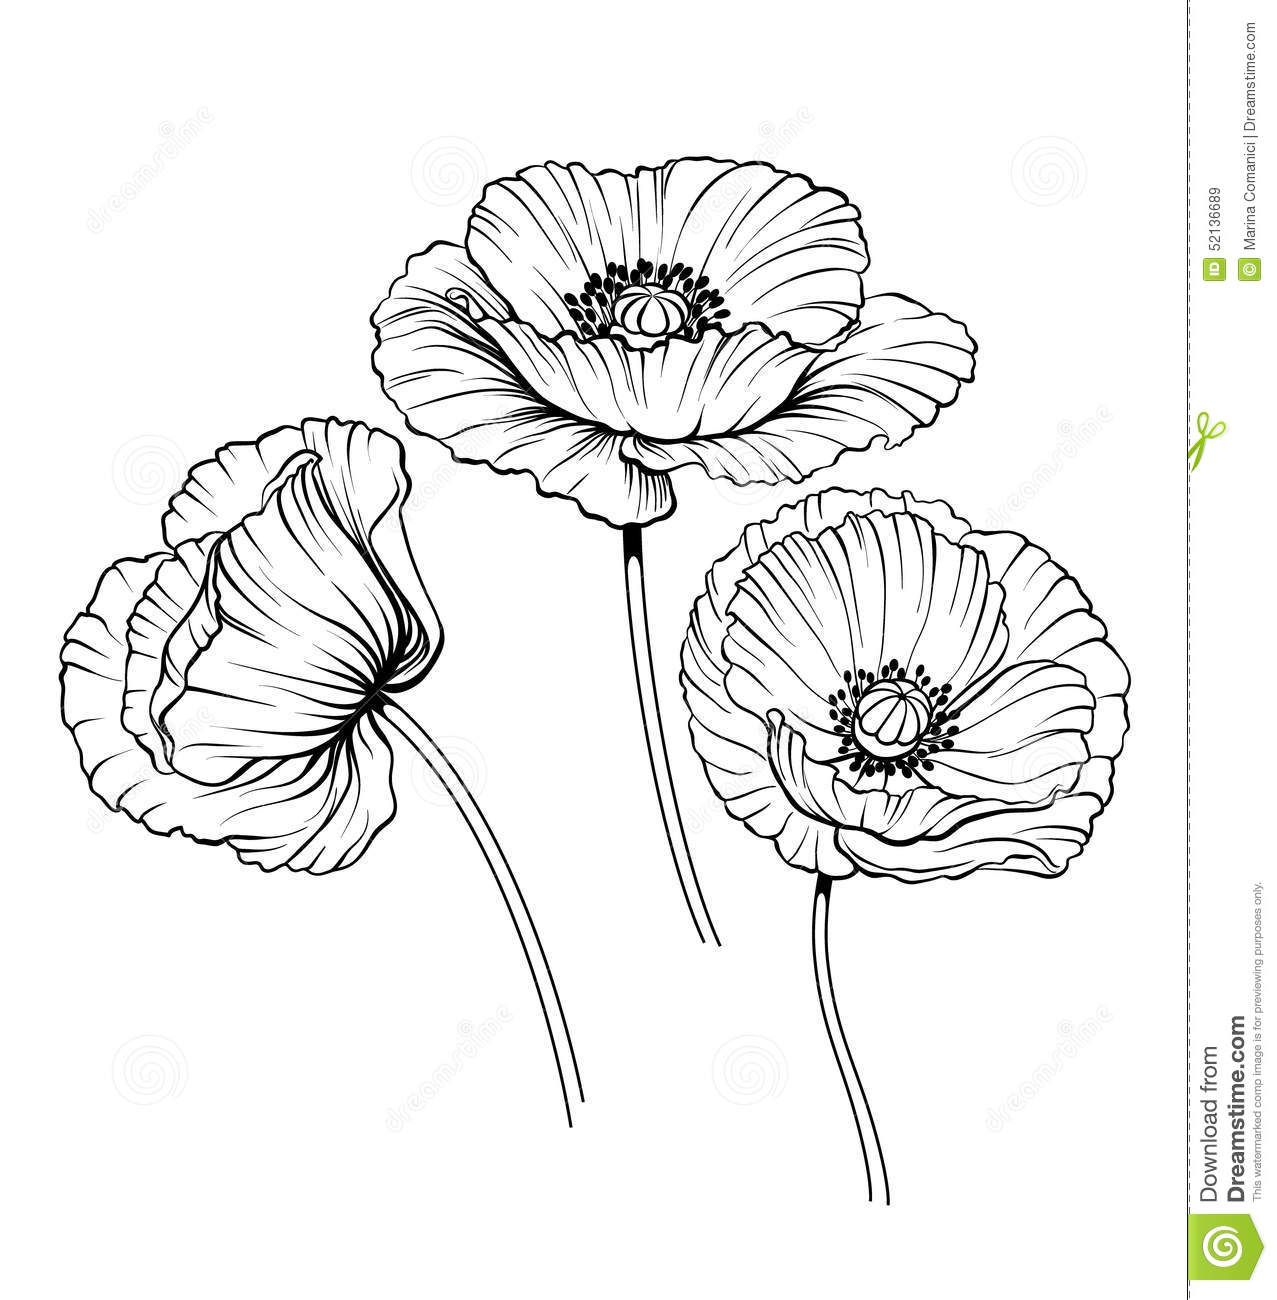 Red Flower Line Drawing : Poppies drawing google search how to draw pinterest